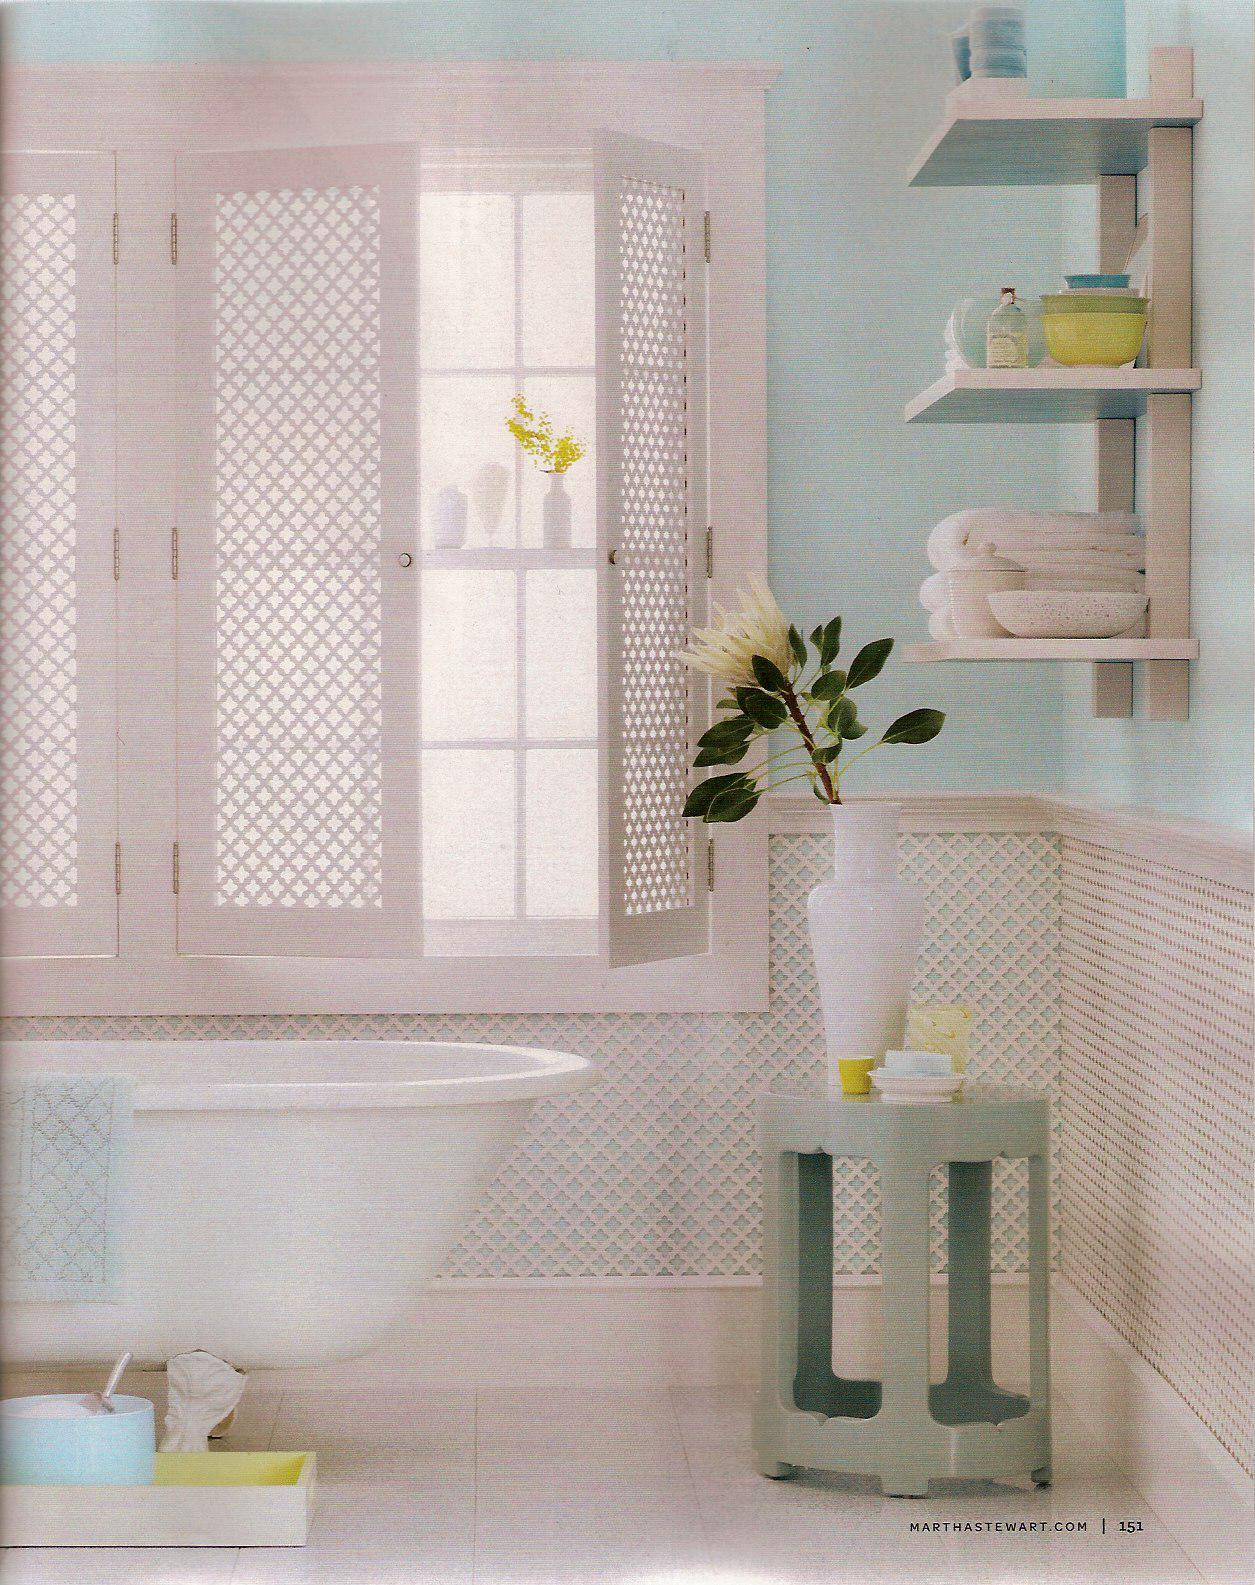 Martha stewart simply healthy for Martha stewart bathroom designs